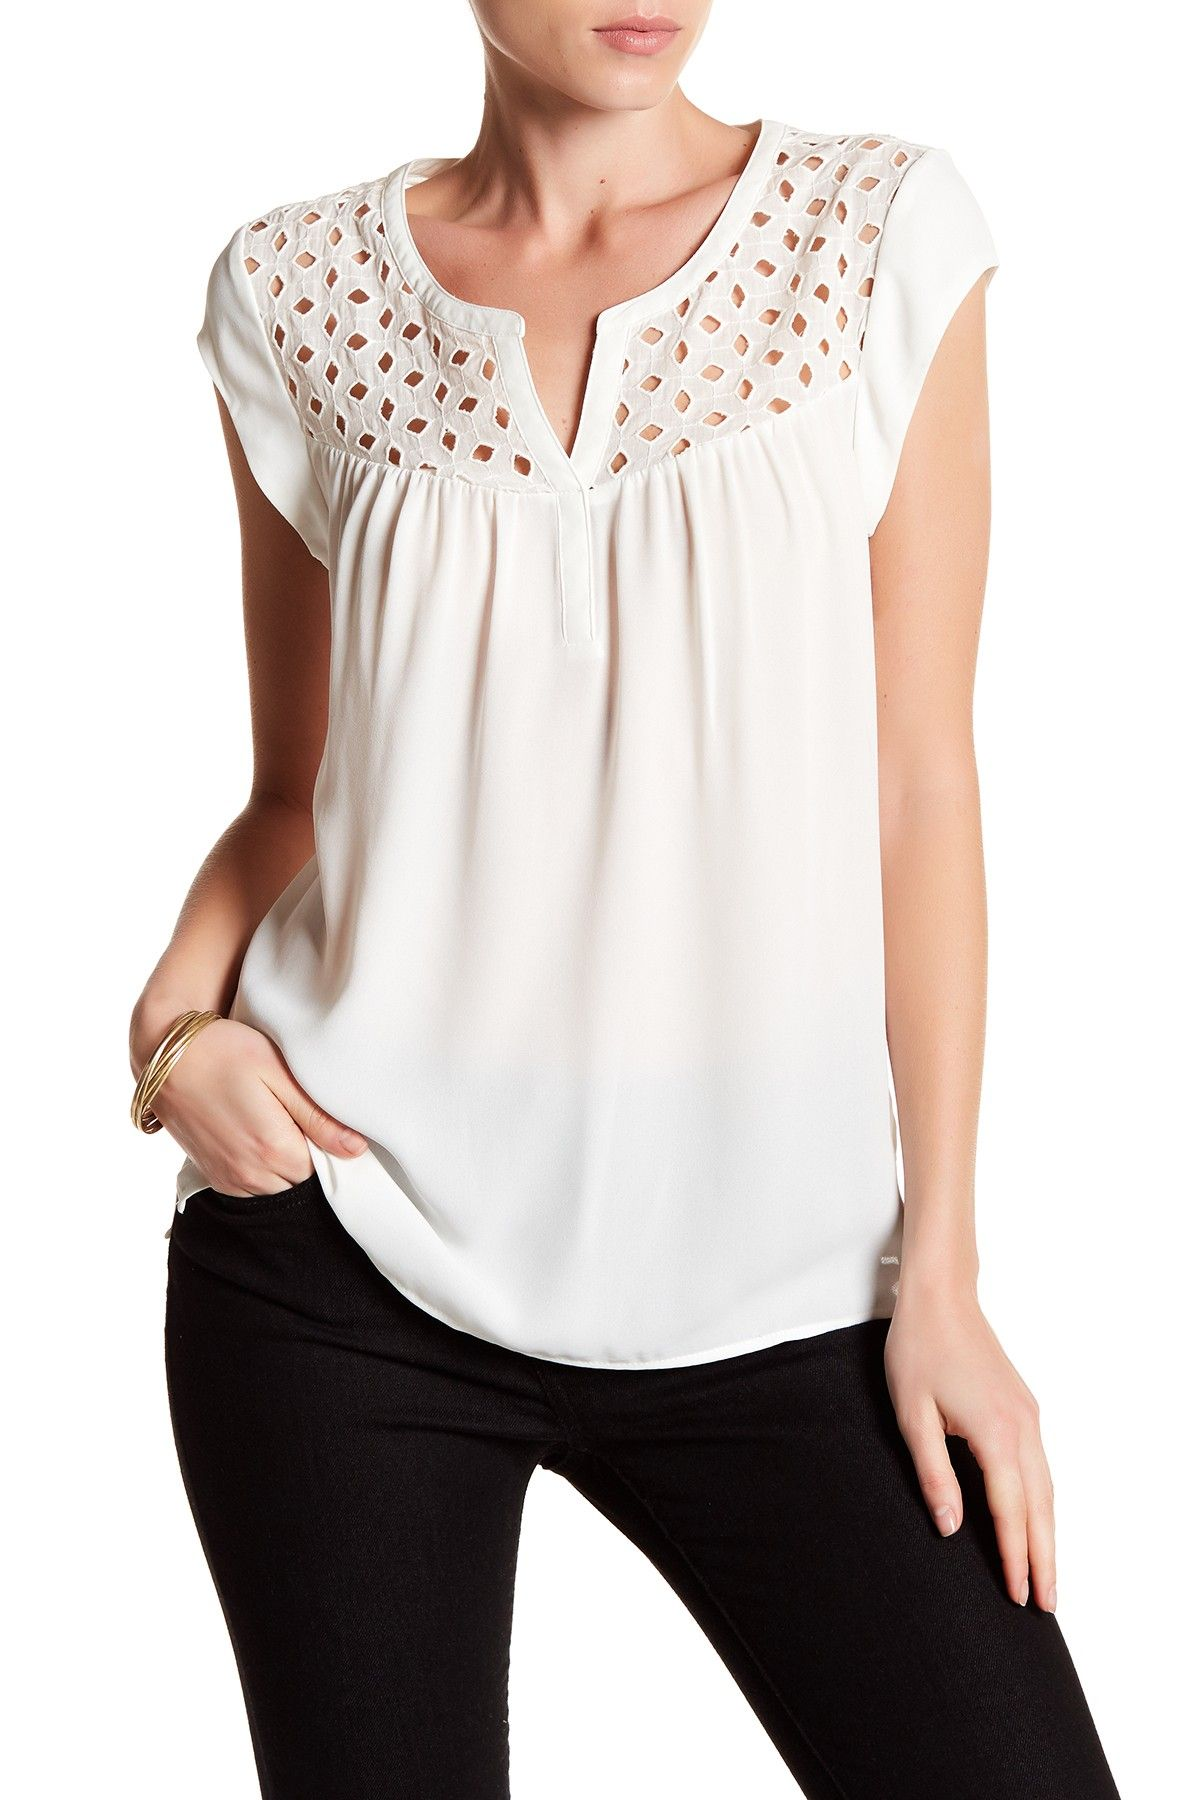 3a3e31a88d95bd DR2 by Daniel Rainn | Eyelet Yoke Short Sleeve Blouse | Products